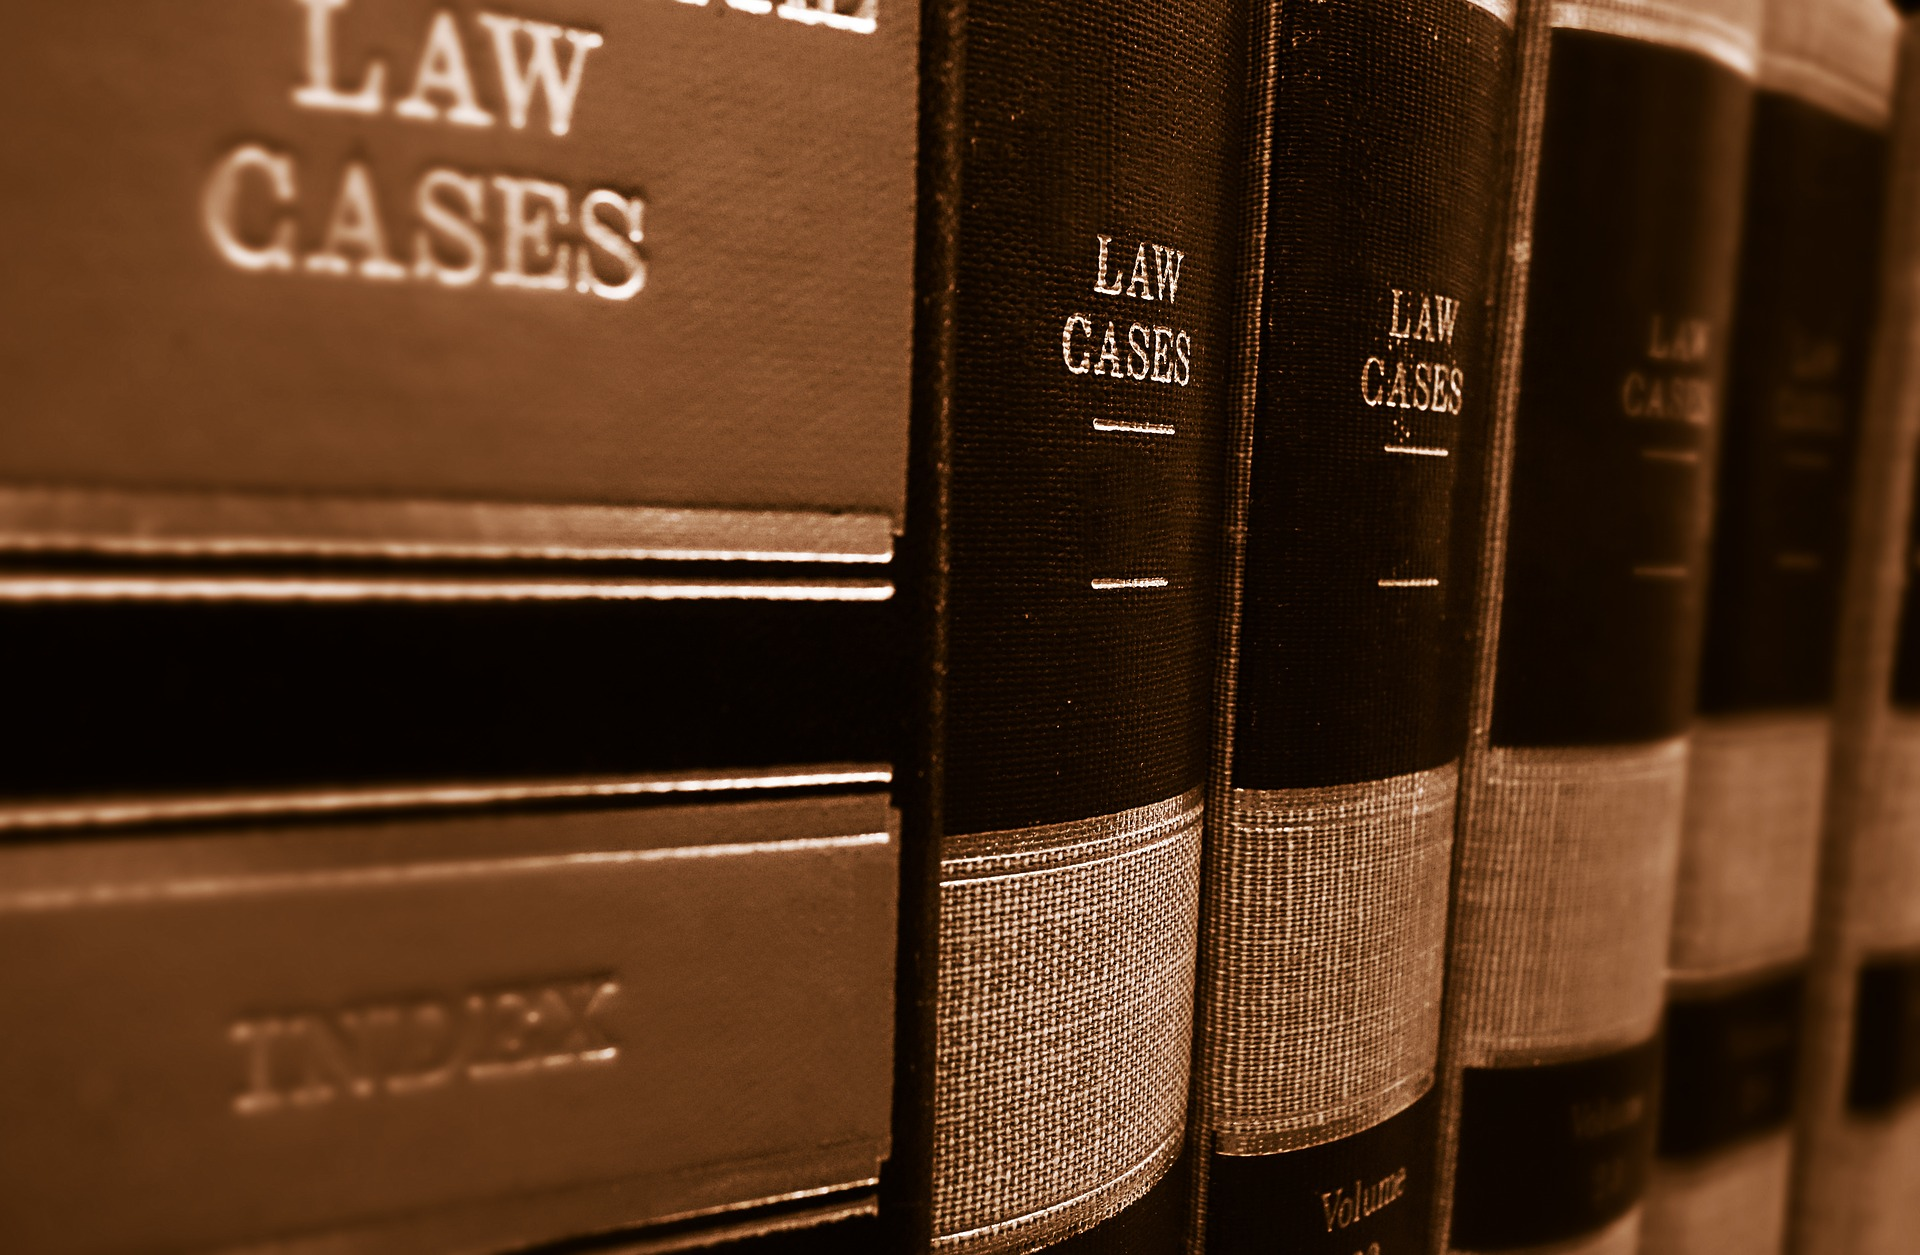 A series of books titles 'law cases' on a shelf